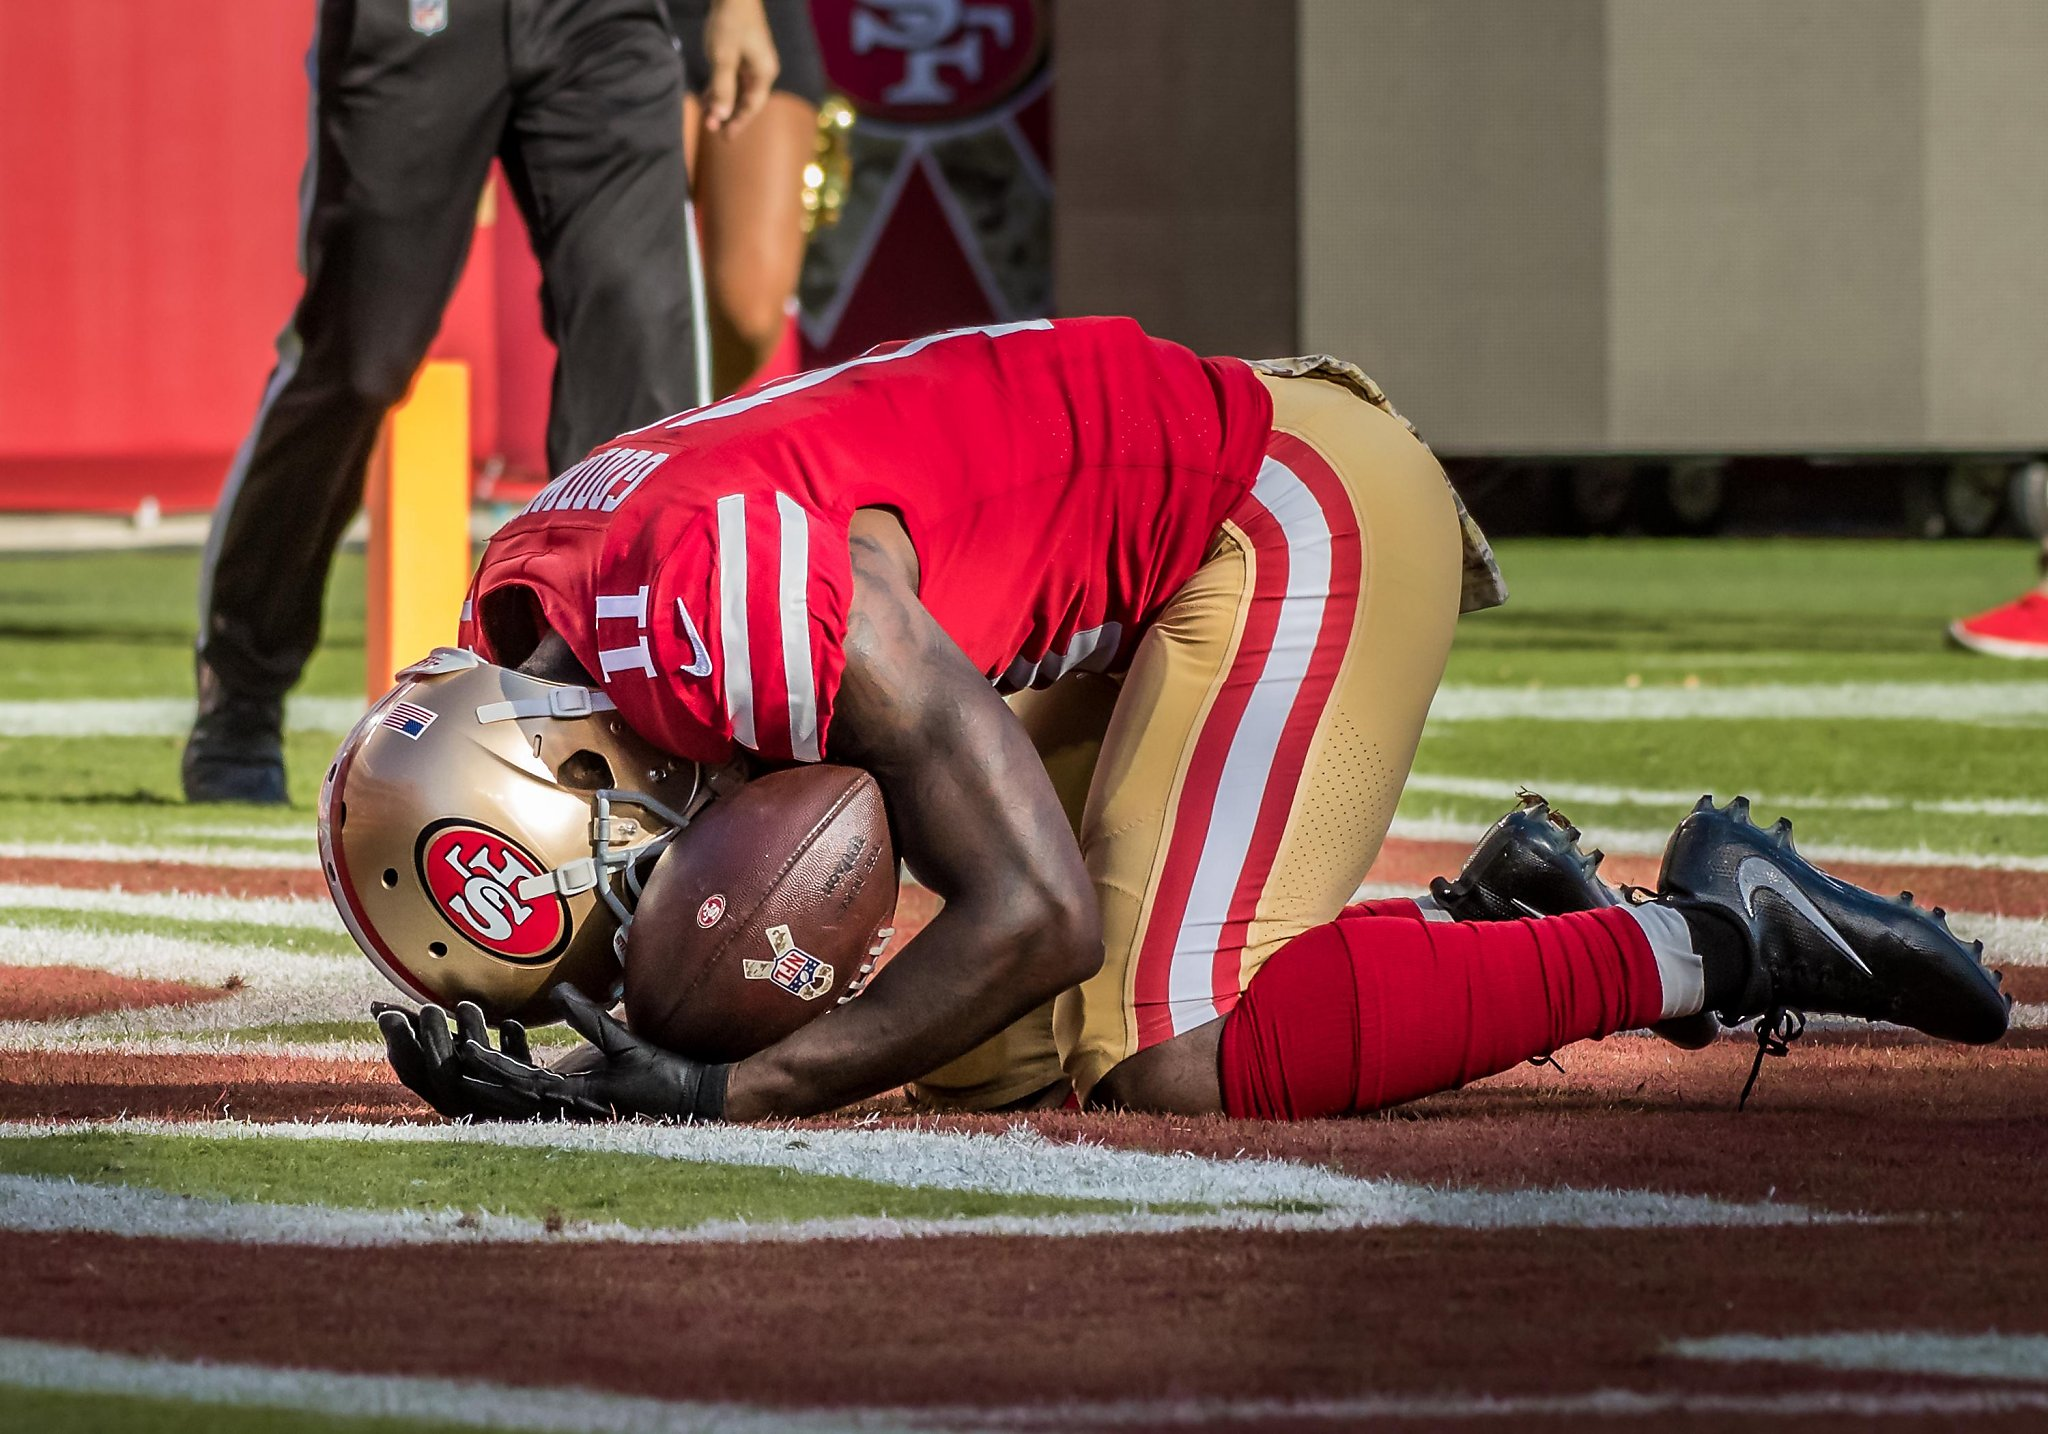 49ers' Goodwin and his wife become parents for the first time